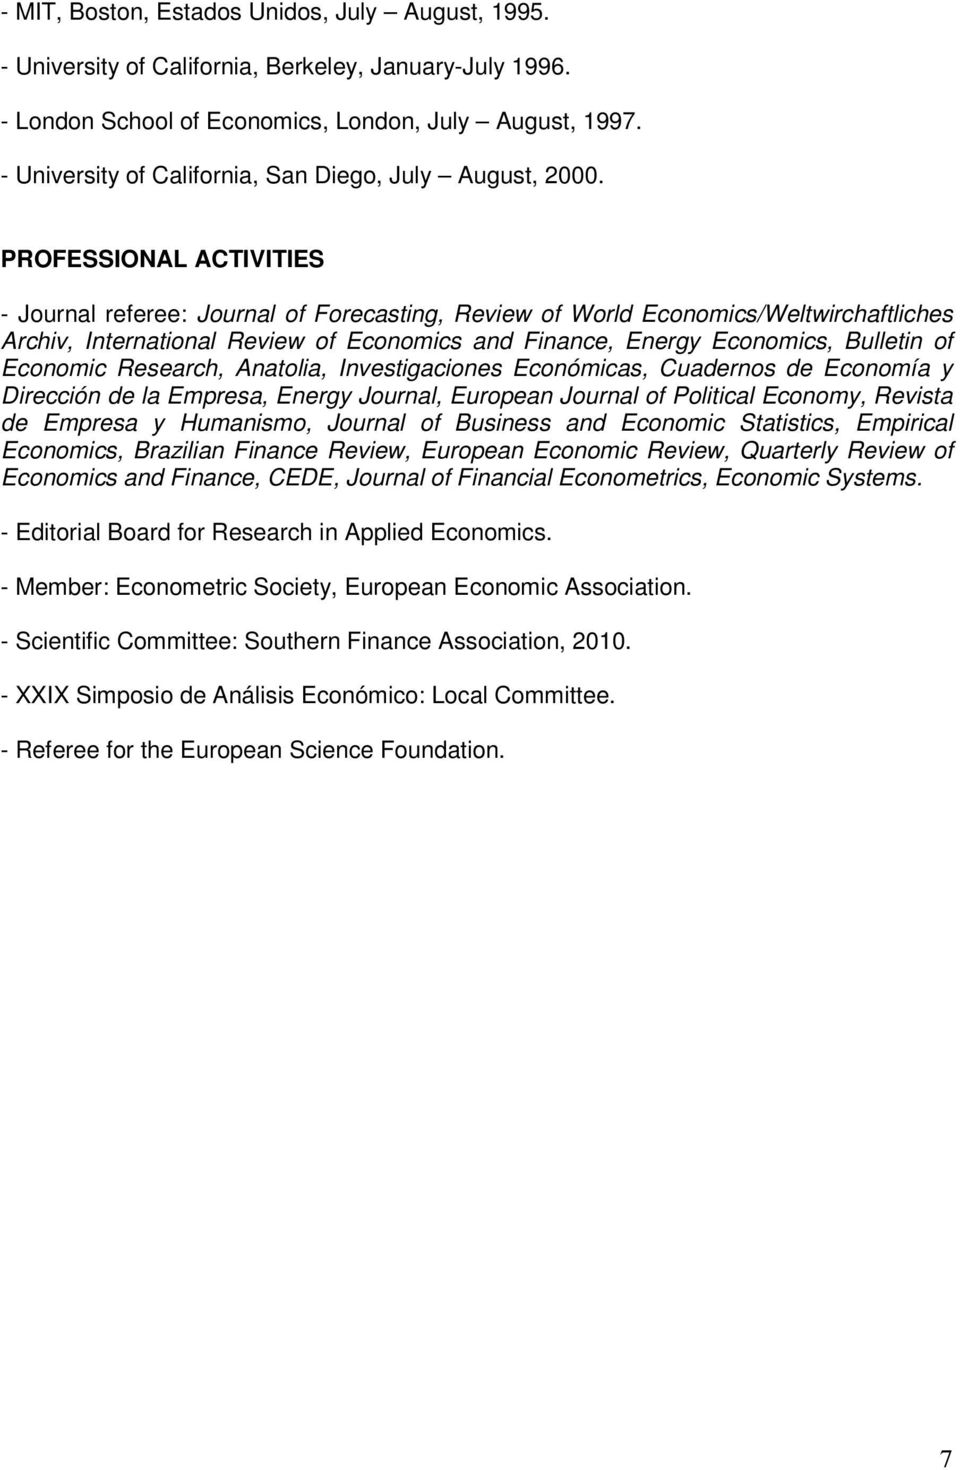 PROFESSIONAL ACTIVITIES - Journal referee: Journal of Forecasting, Review of World Economics/Weltwirchaftliches Archiv, International Review of Economics and Finance, Energy Economics, Bulletin of